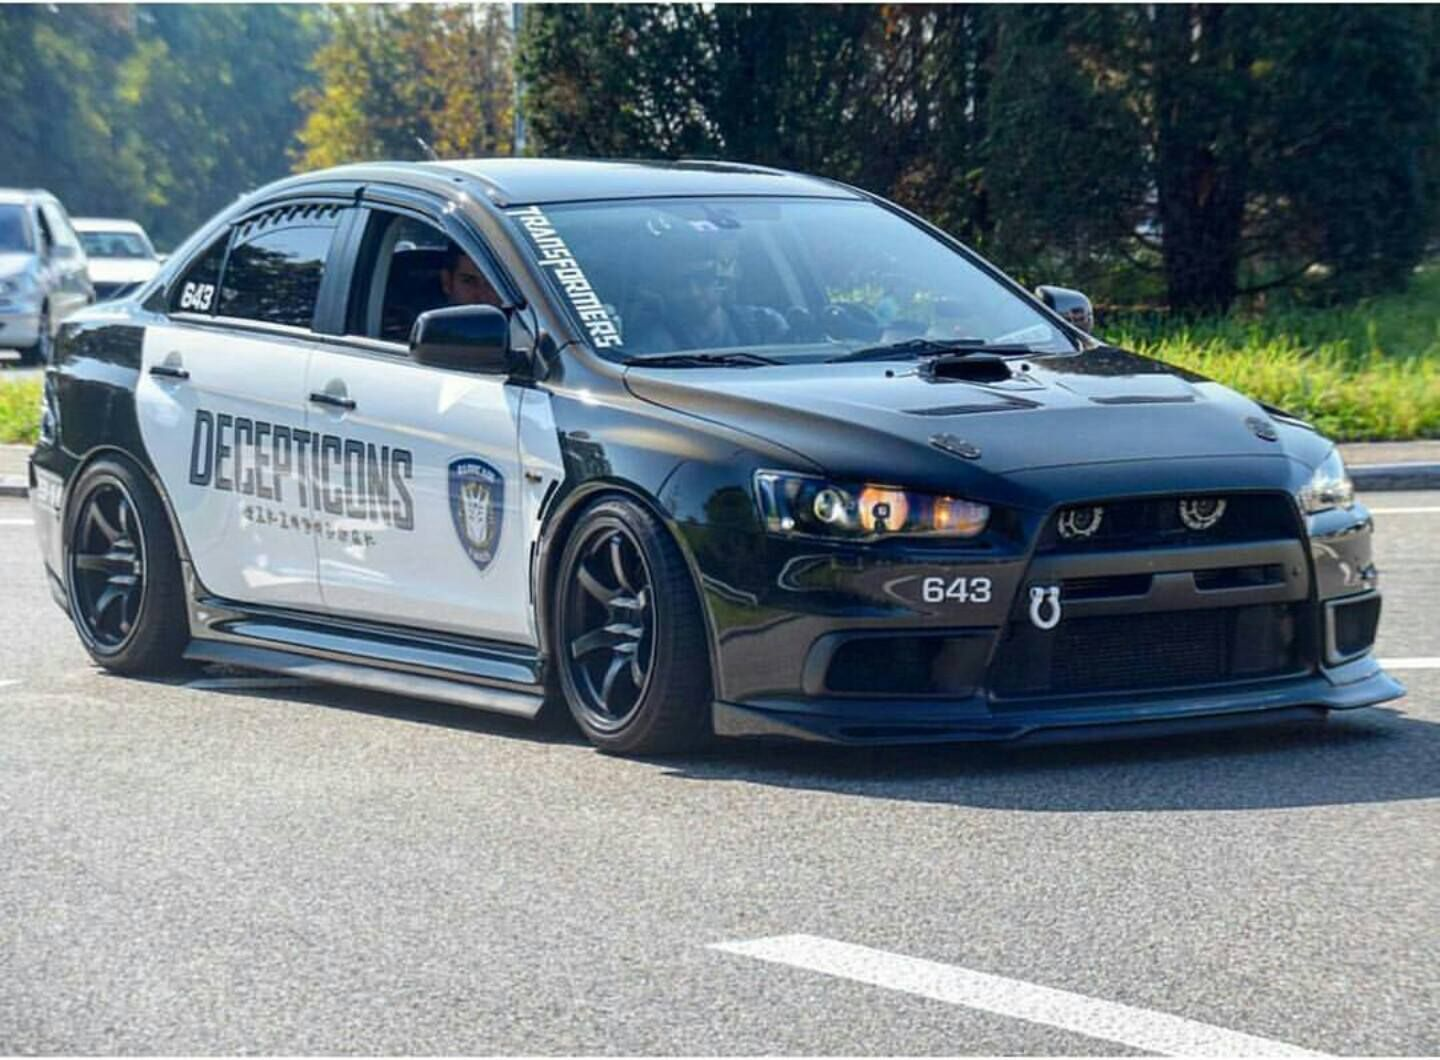 fast and furious subaru impreza wrx with Mitsubishi Lancer Evolution Fast And Furious on Watch besides Cool Car Backgrounds besides Mitsubishi Lancer Evolution Fast And Furious together with Modp 1003 1998 Subaru Impreza 25rs Coupe furthermore GREENLIGHT86220.